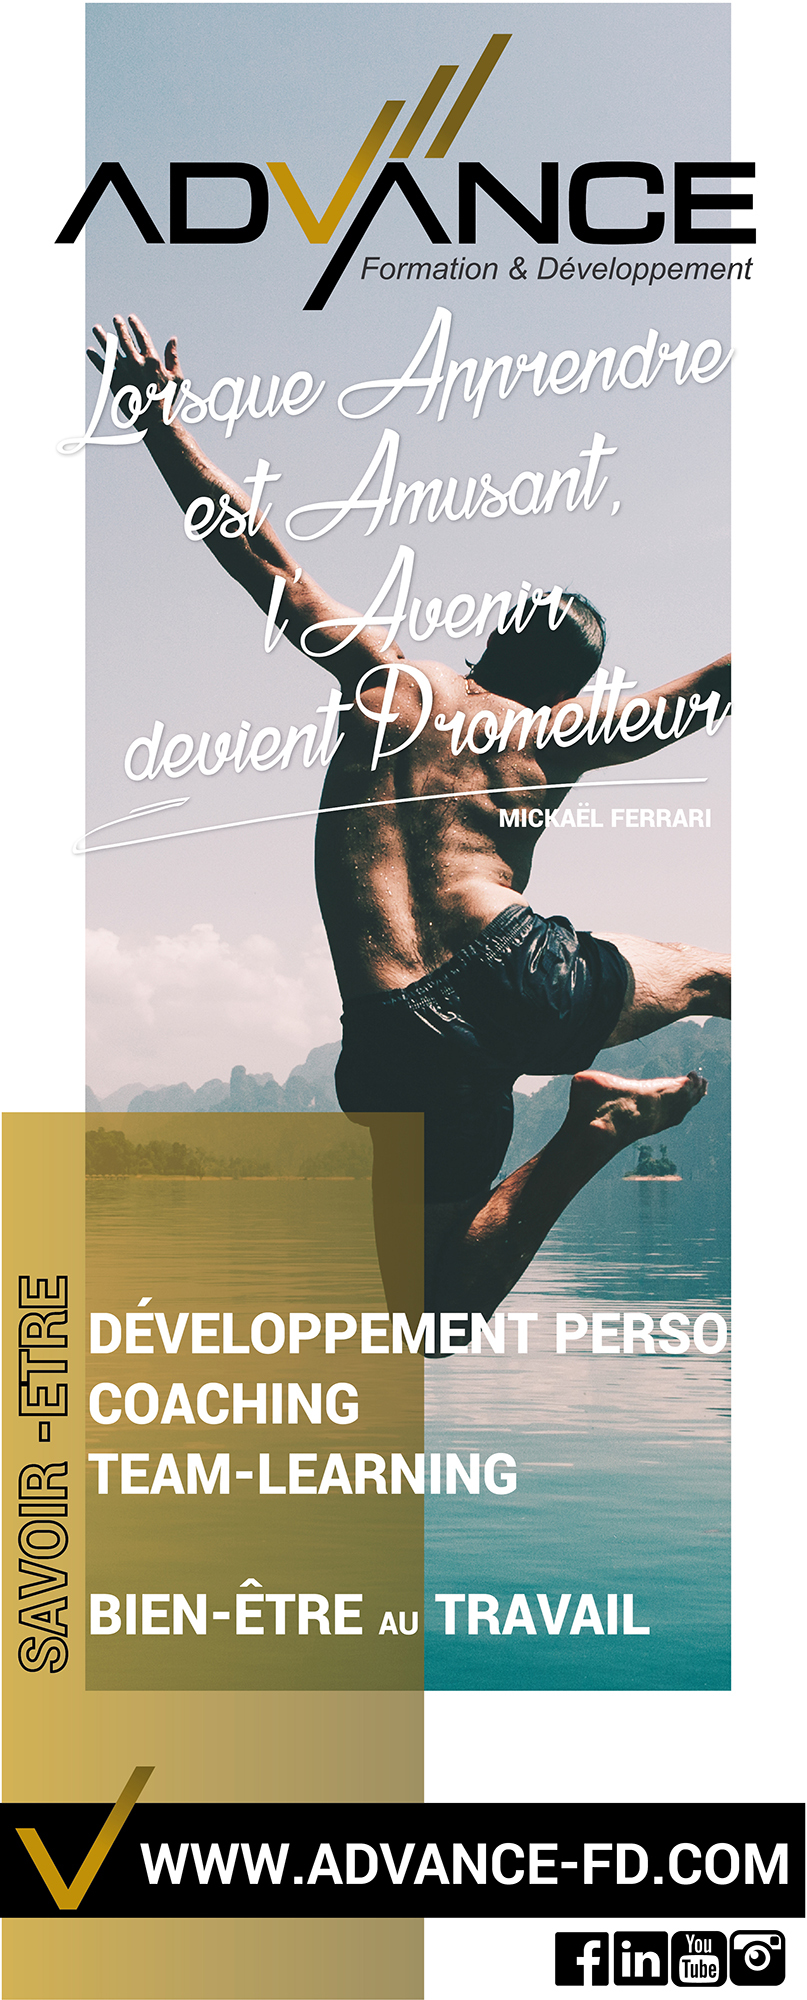 Advance Formation & Développement | Roll Up | Conception